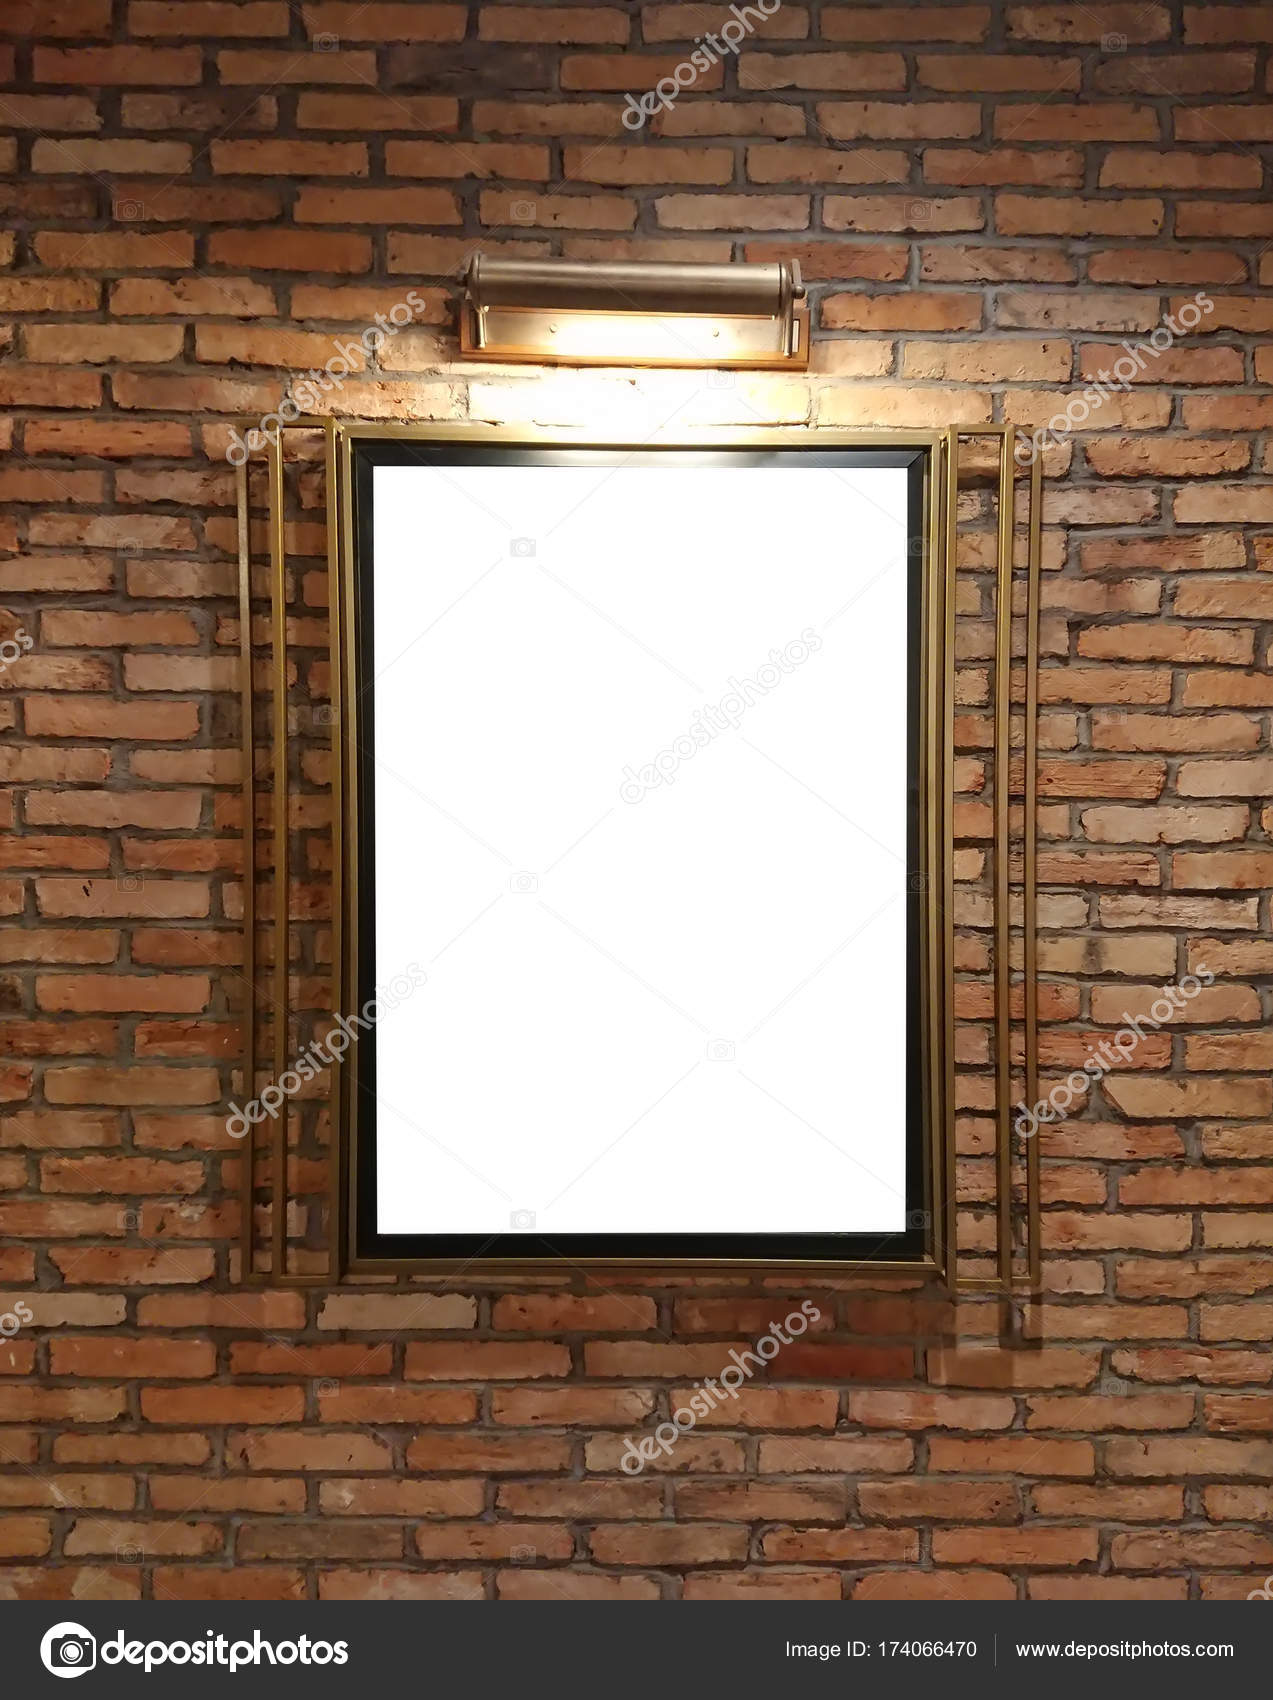 A Blank Frame On Brick Wall With Lamp Mockup Poster Marketing The Top View Photo By Ntdtdt2010gmail